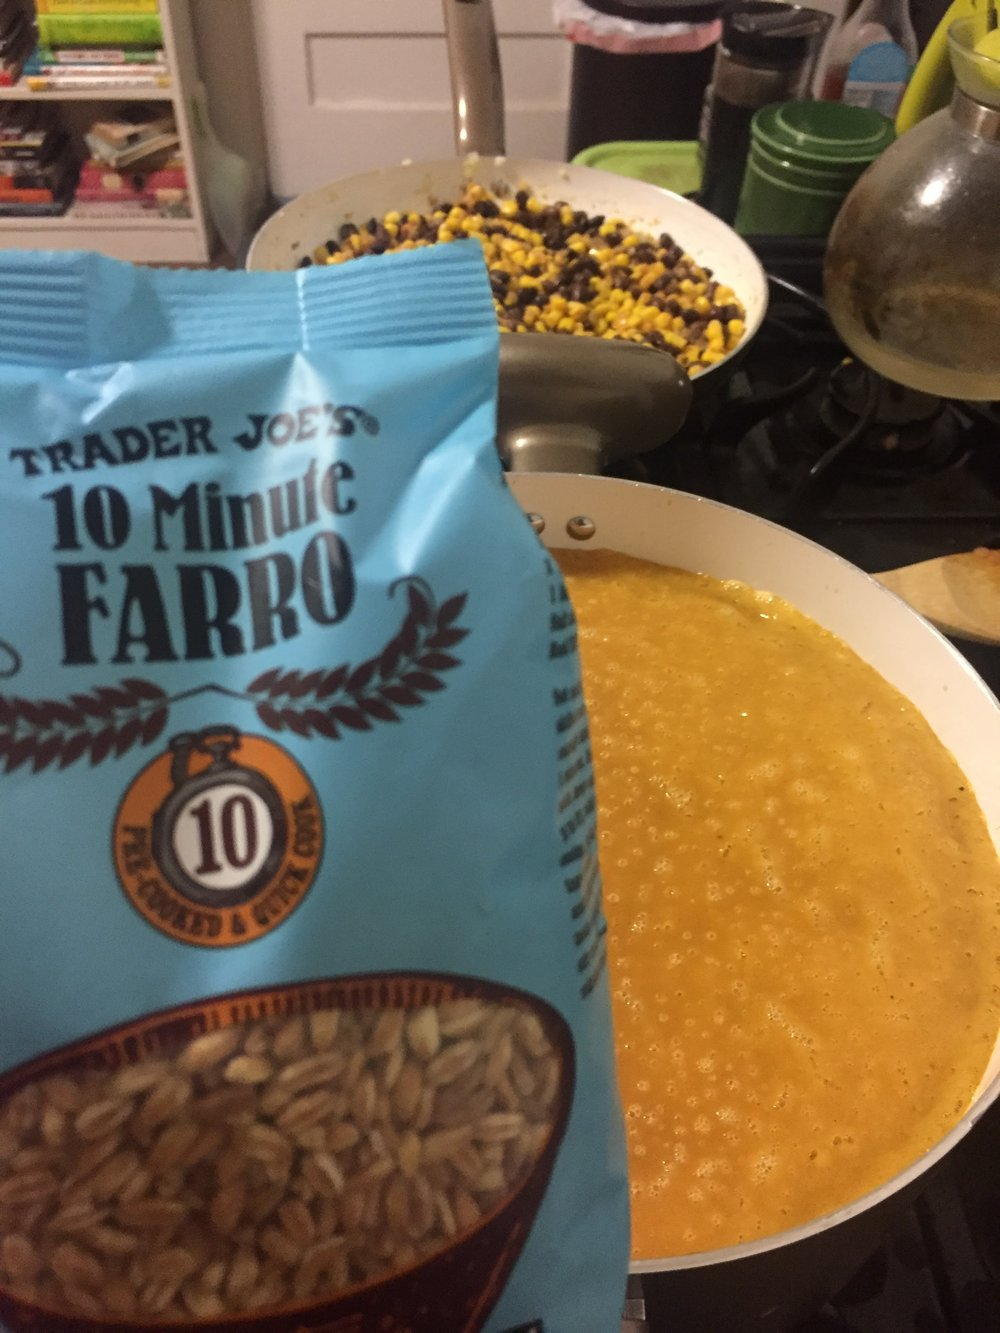 Fact: - Farro helps to regulate blood glucose levels and is a good source of protein.